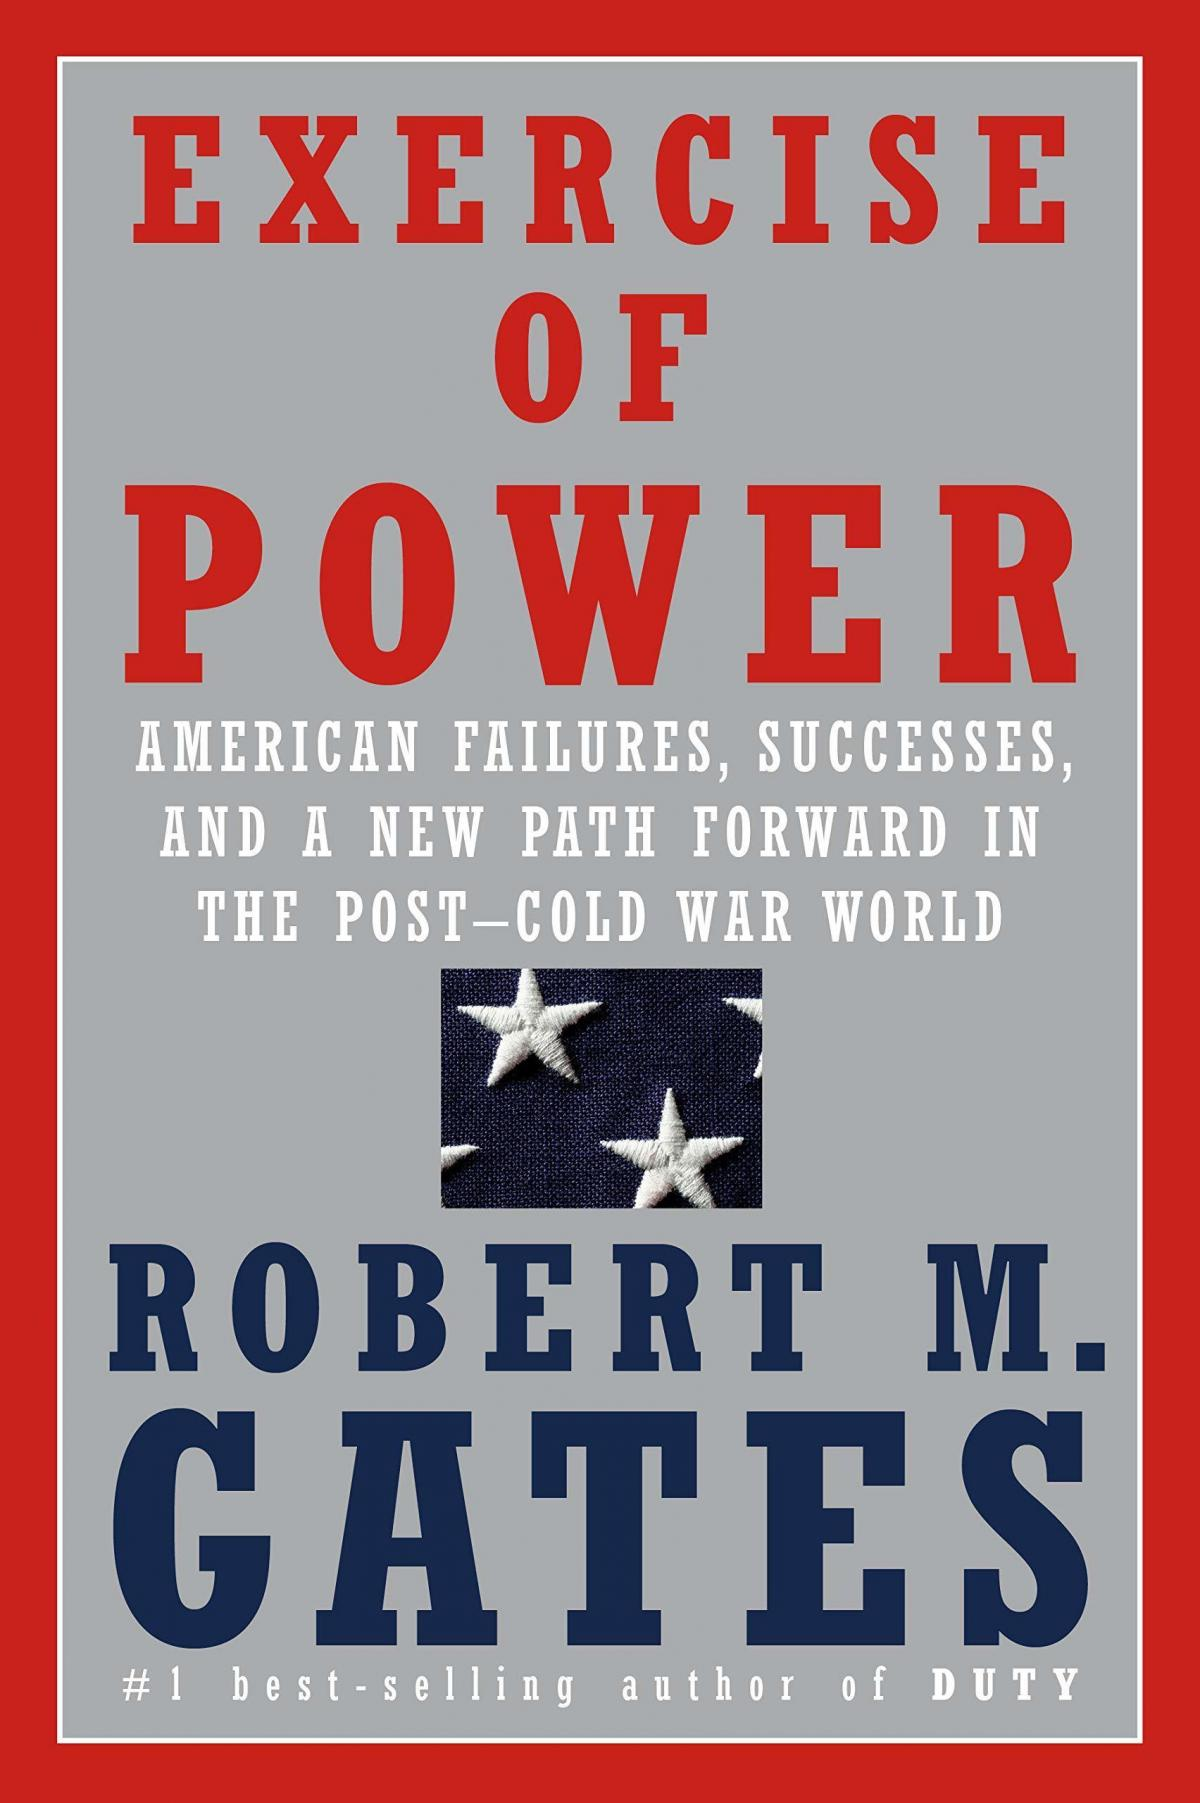 Exercise of Power: American Failures, Successes, and a New Path Forward in the Post-Cold War World, Robert Gates